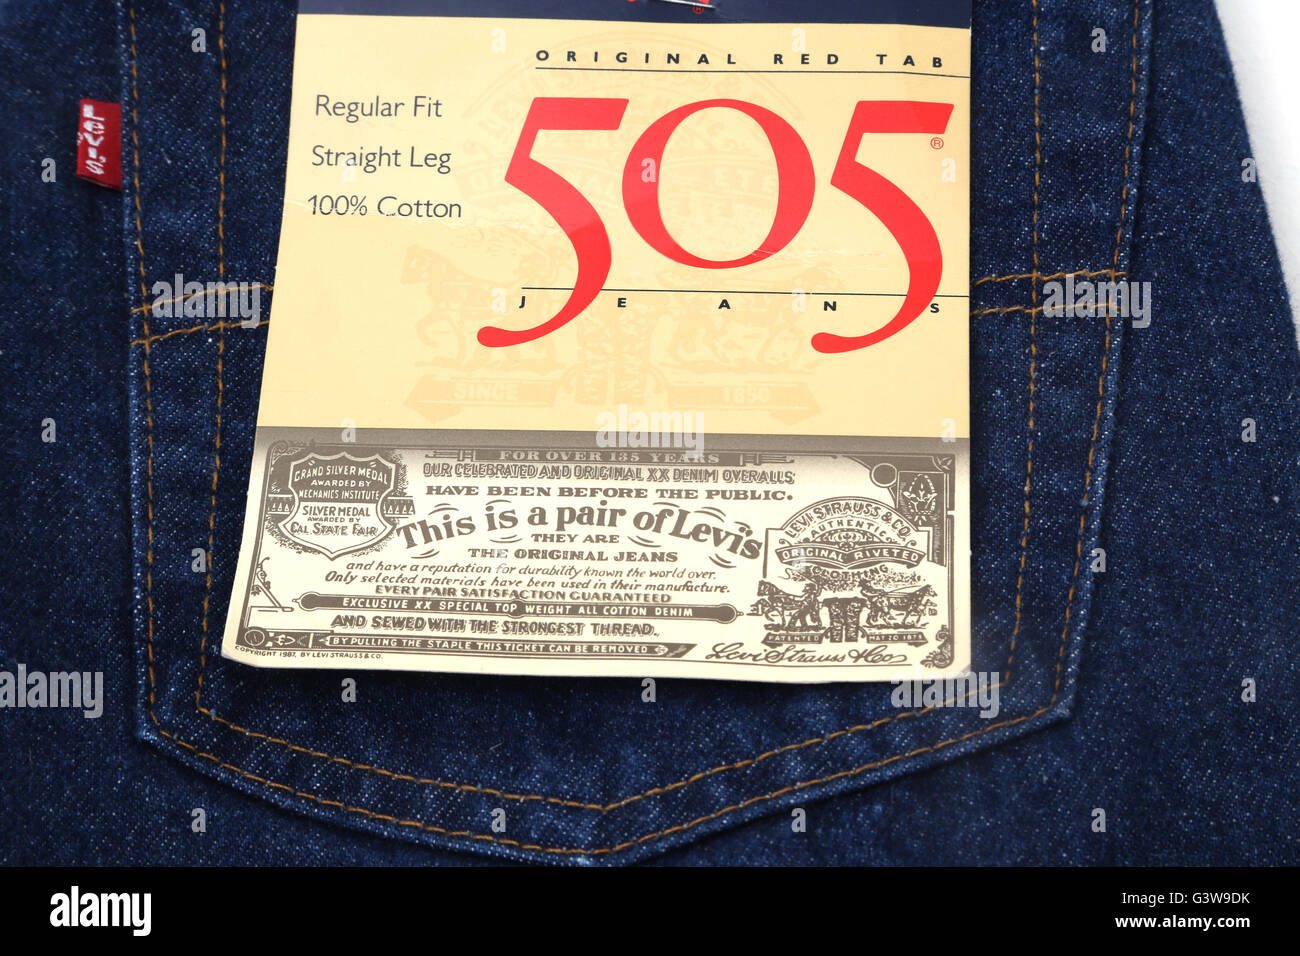 15eaf06d693 Levi Strauss Original Red Tab 505 Jeans Label Stock Photo: 105662415 ...